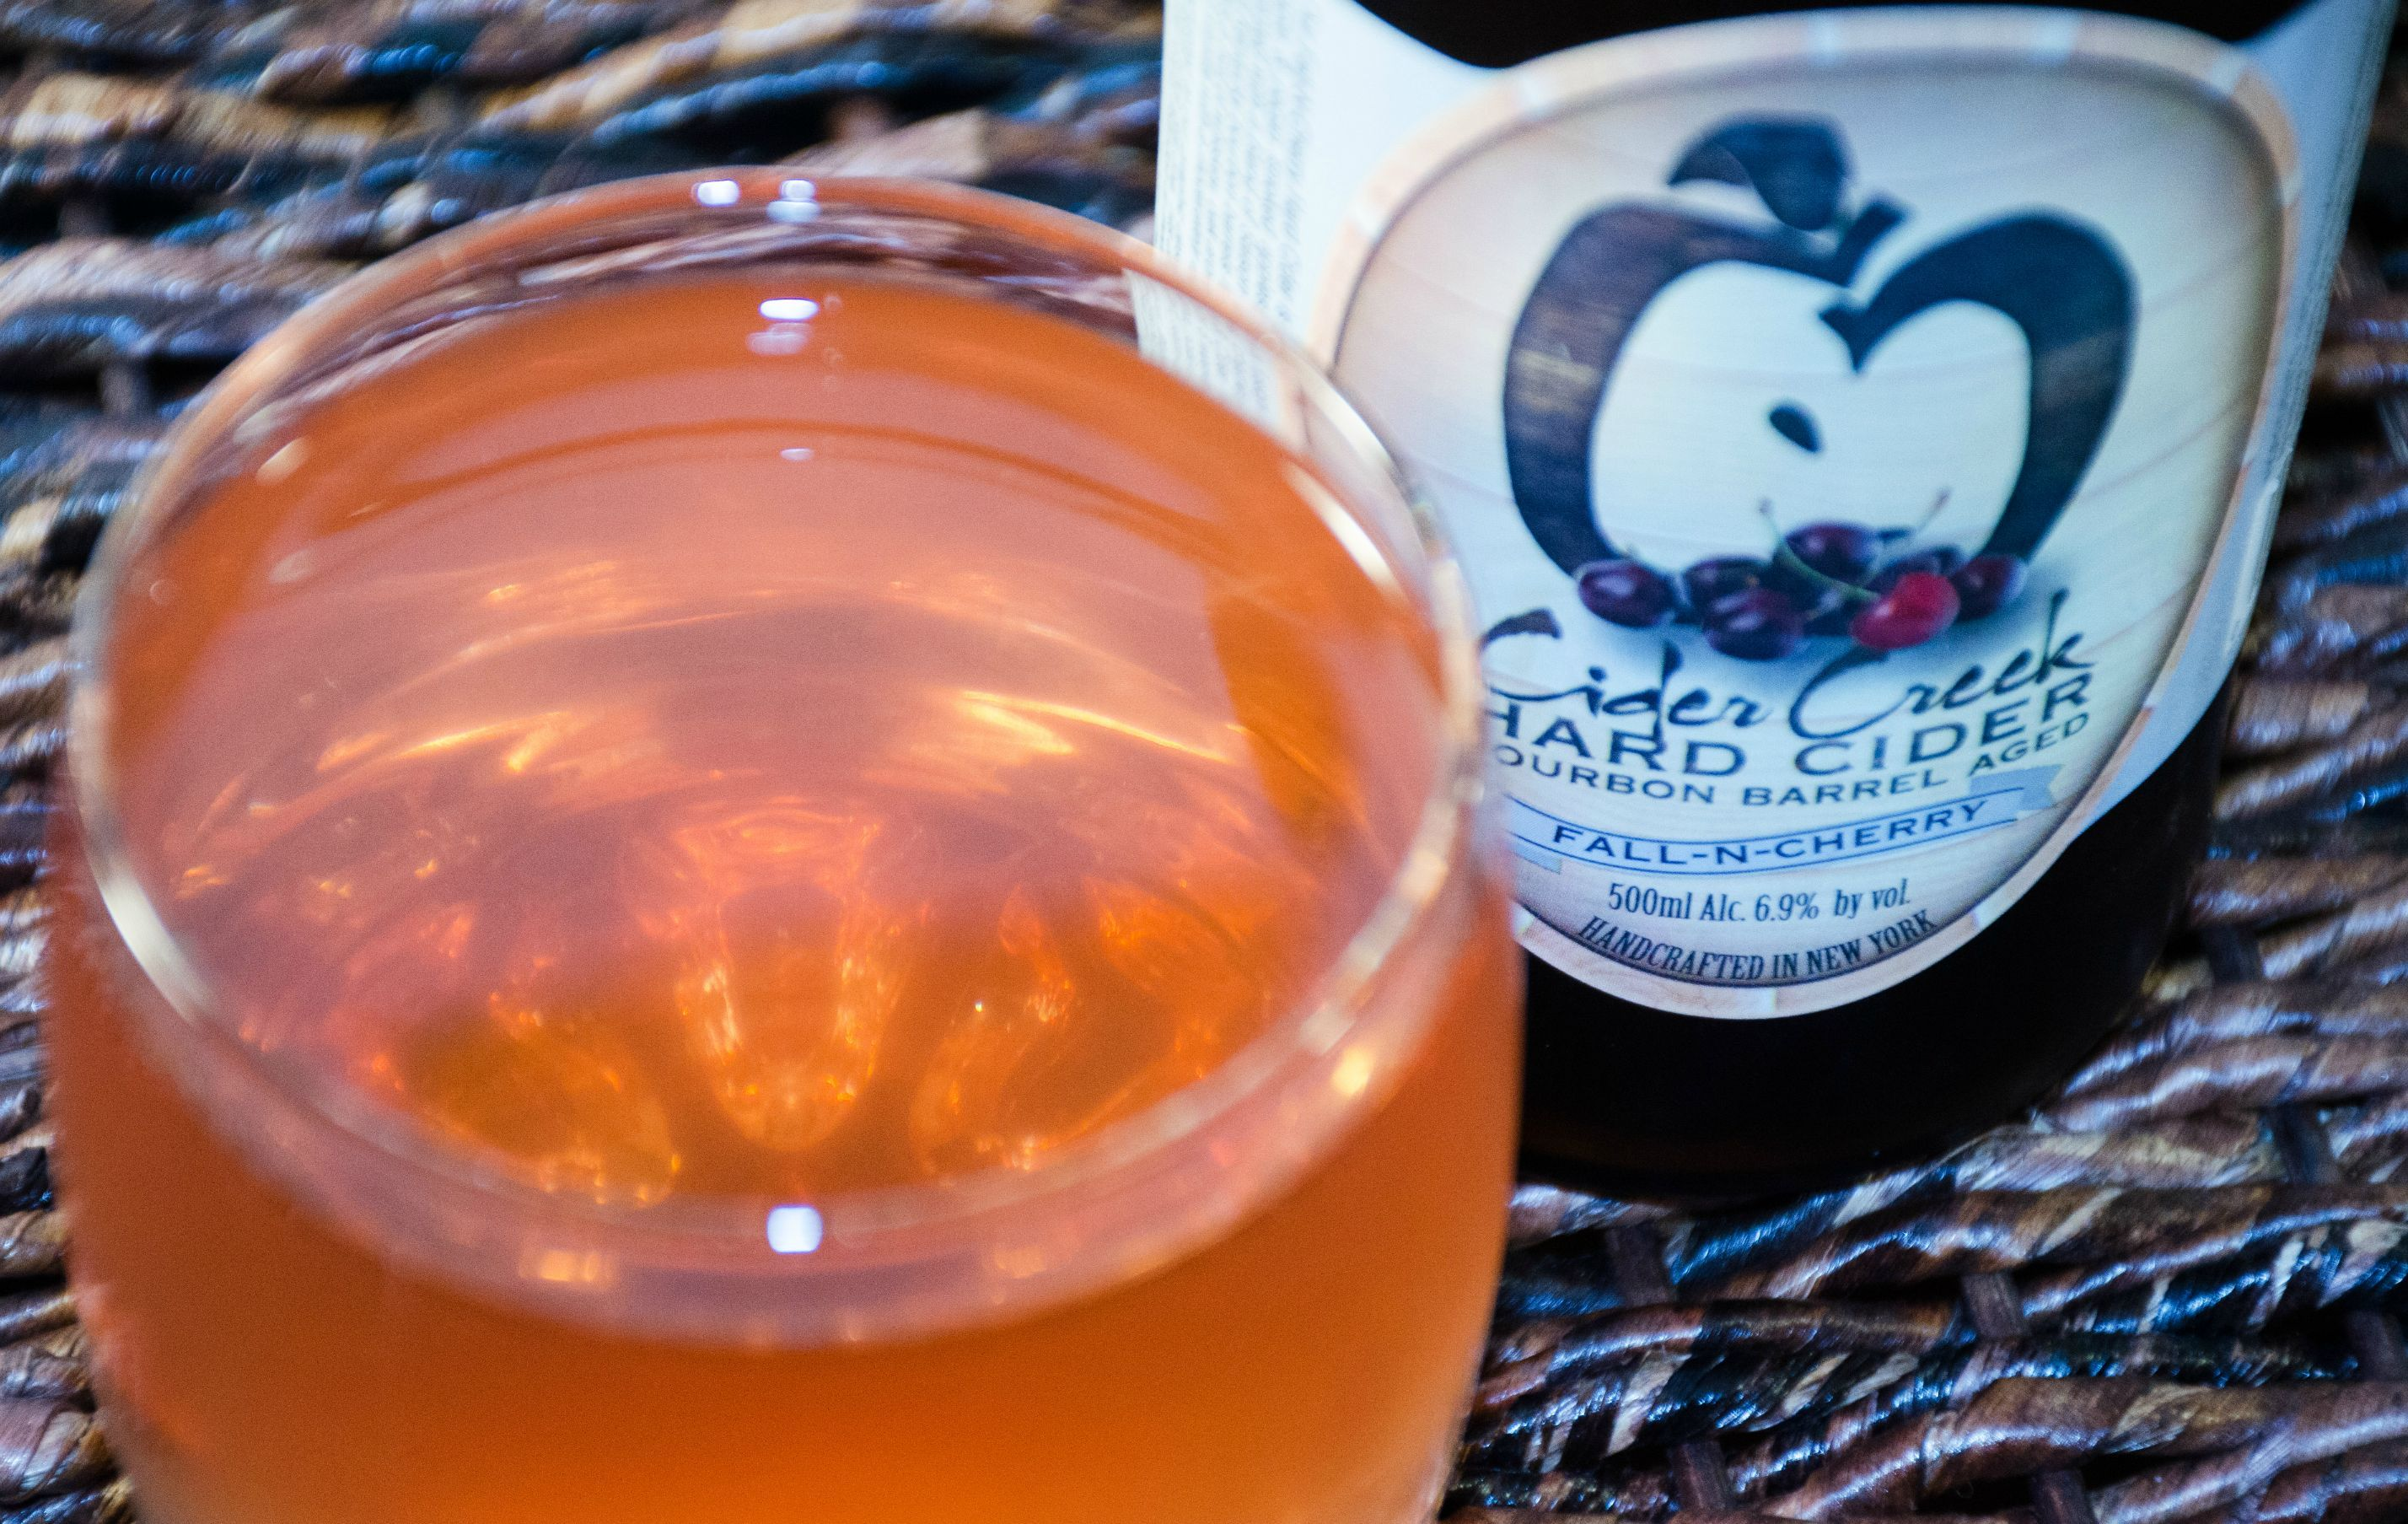 That Special Flavor: Cider Creek, Fall-N-Cherry Cider